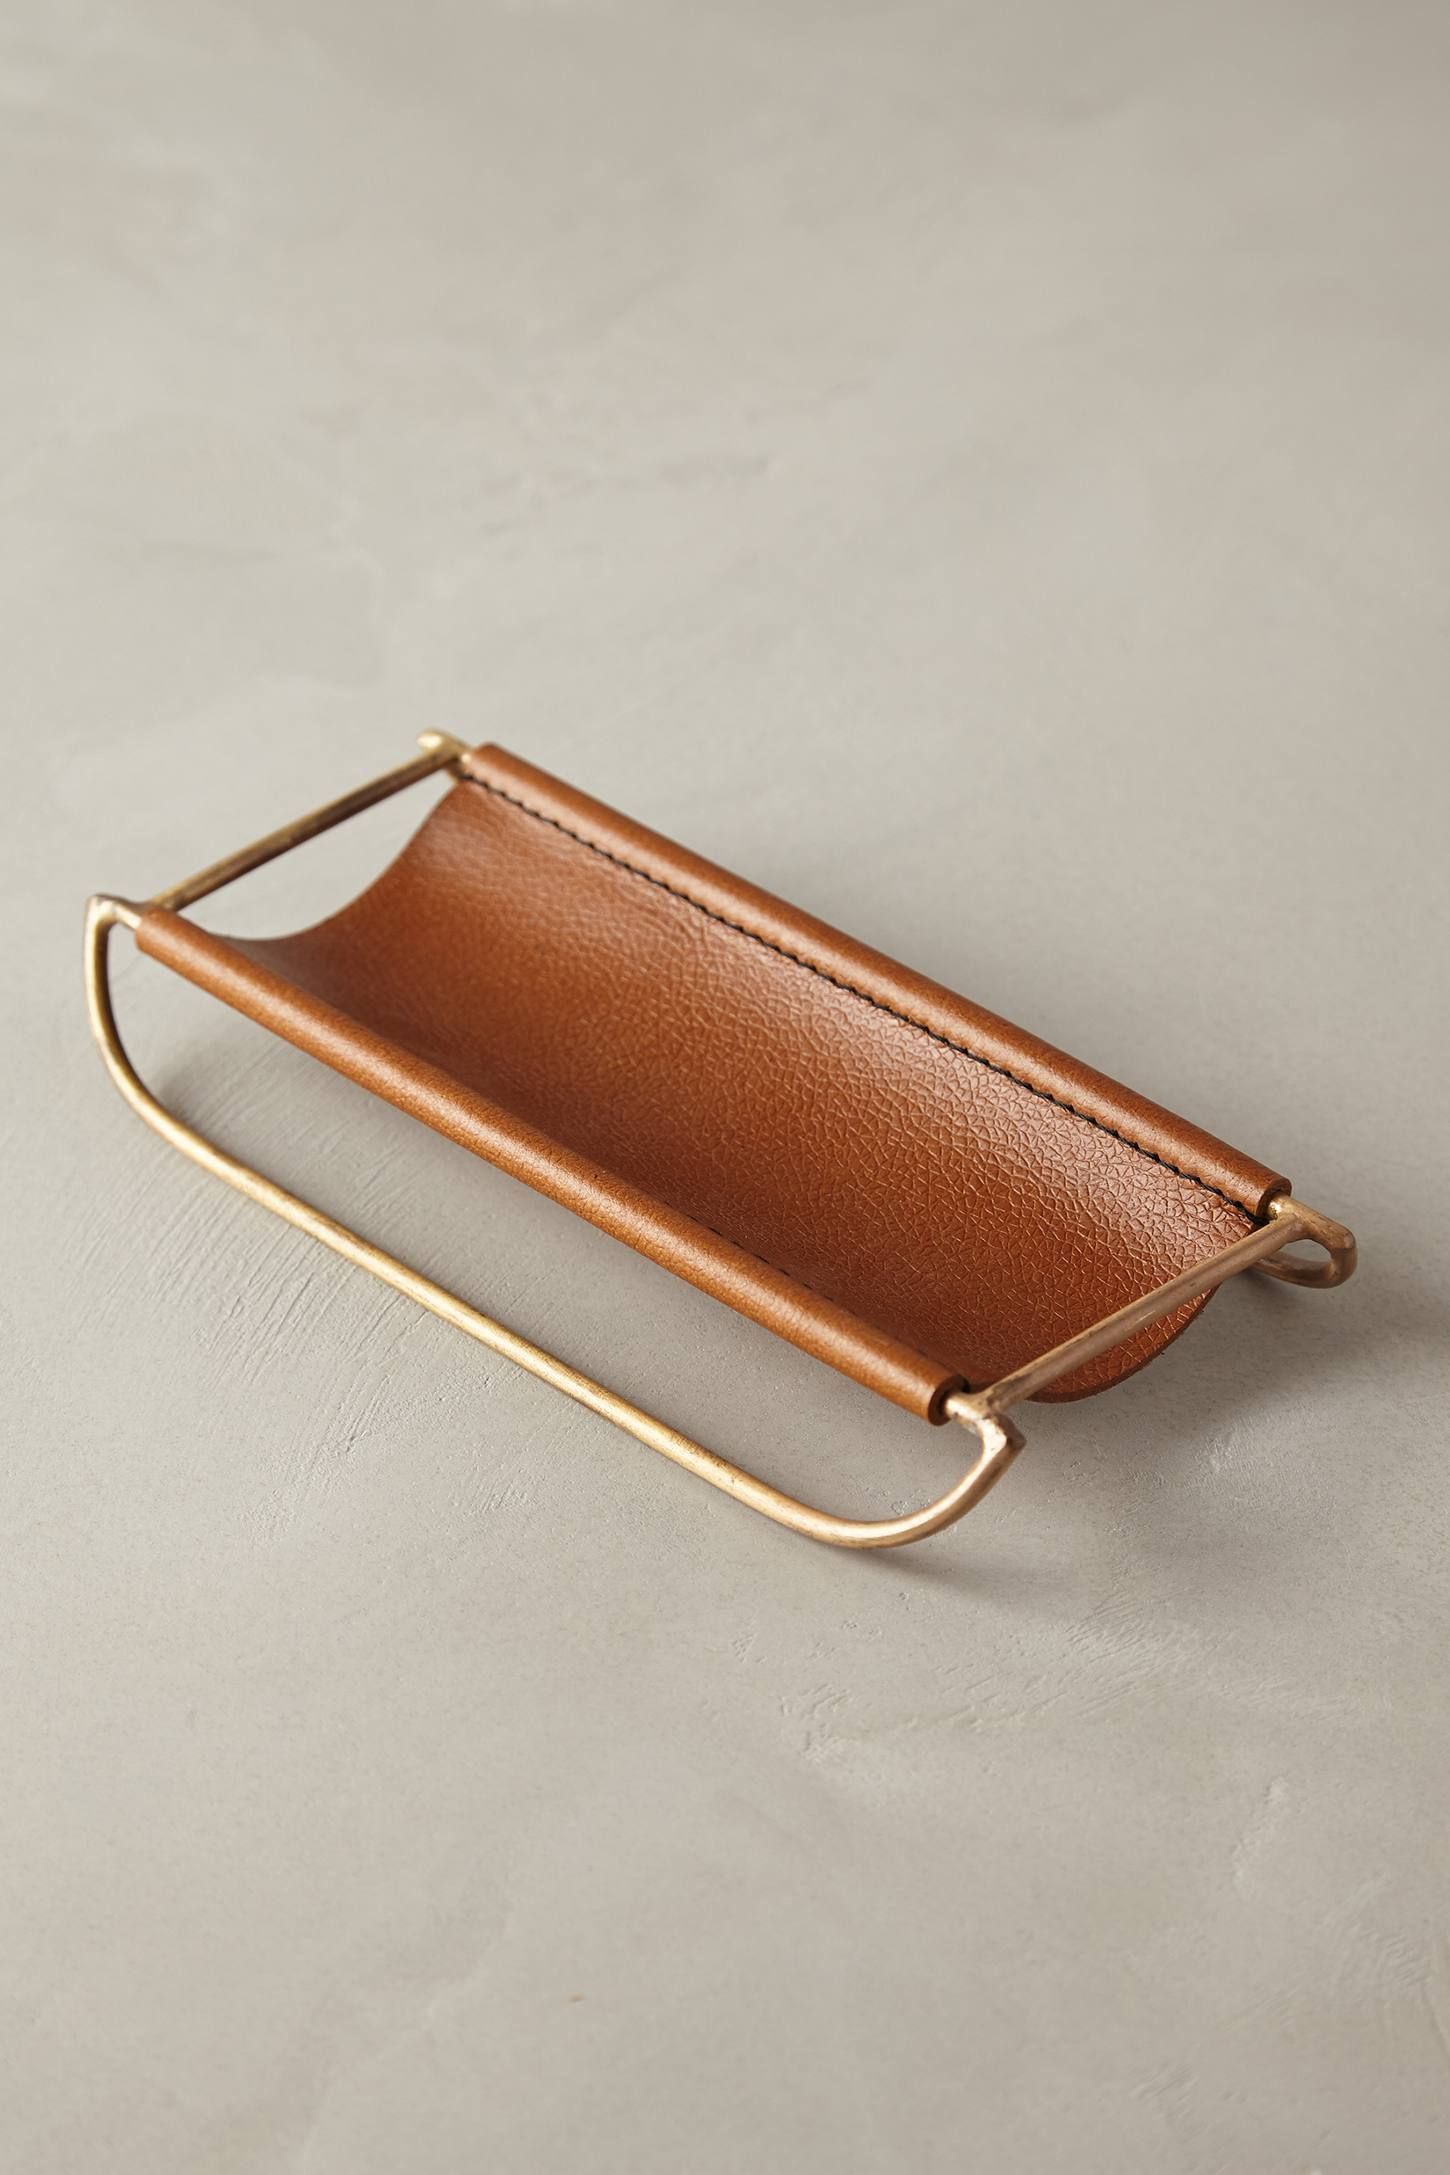 Leather desk accessories - Saddle Ring Desk Collection Leather Accessoriesdesk